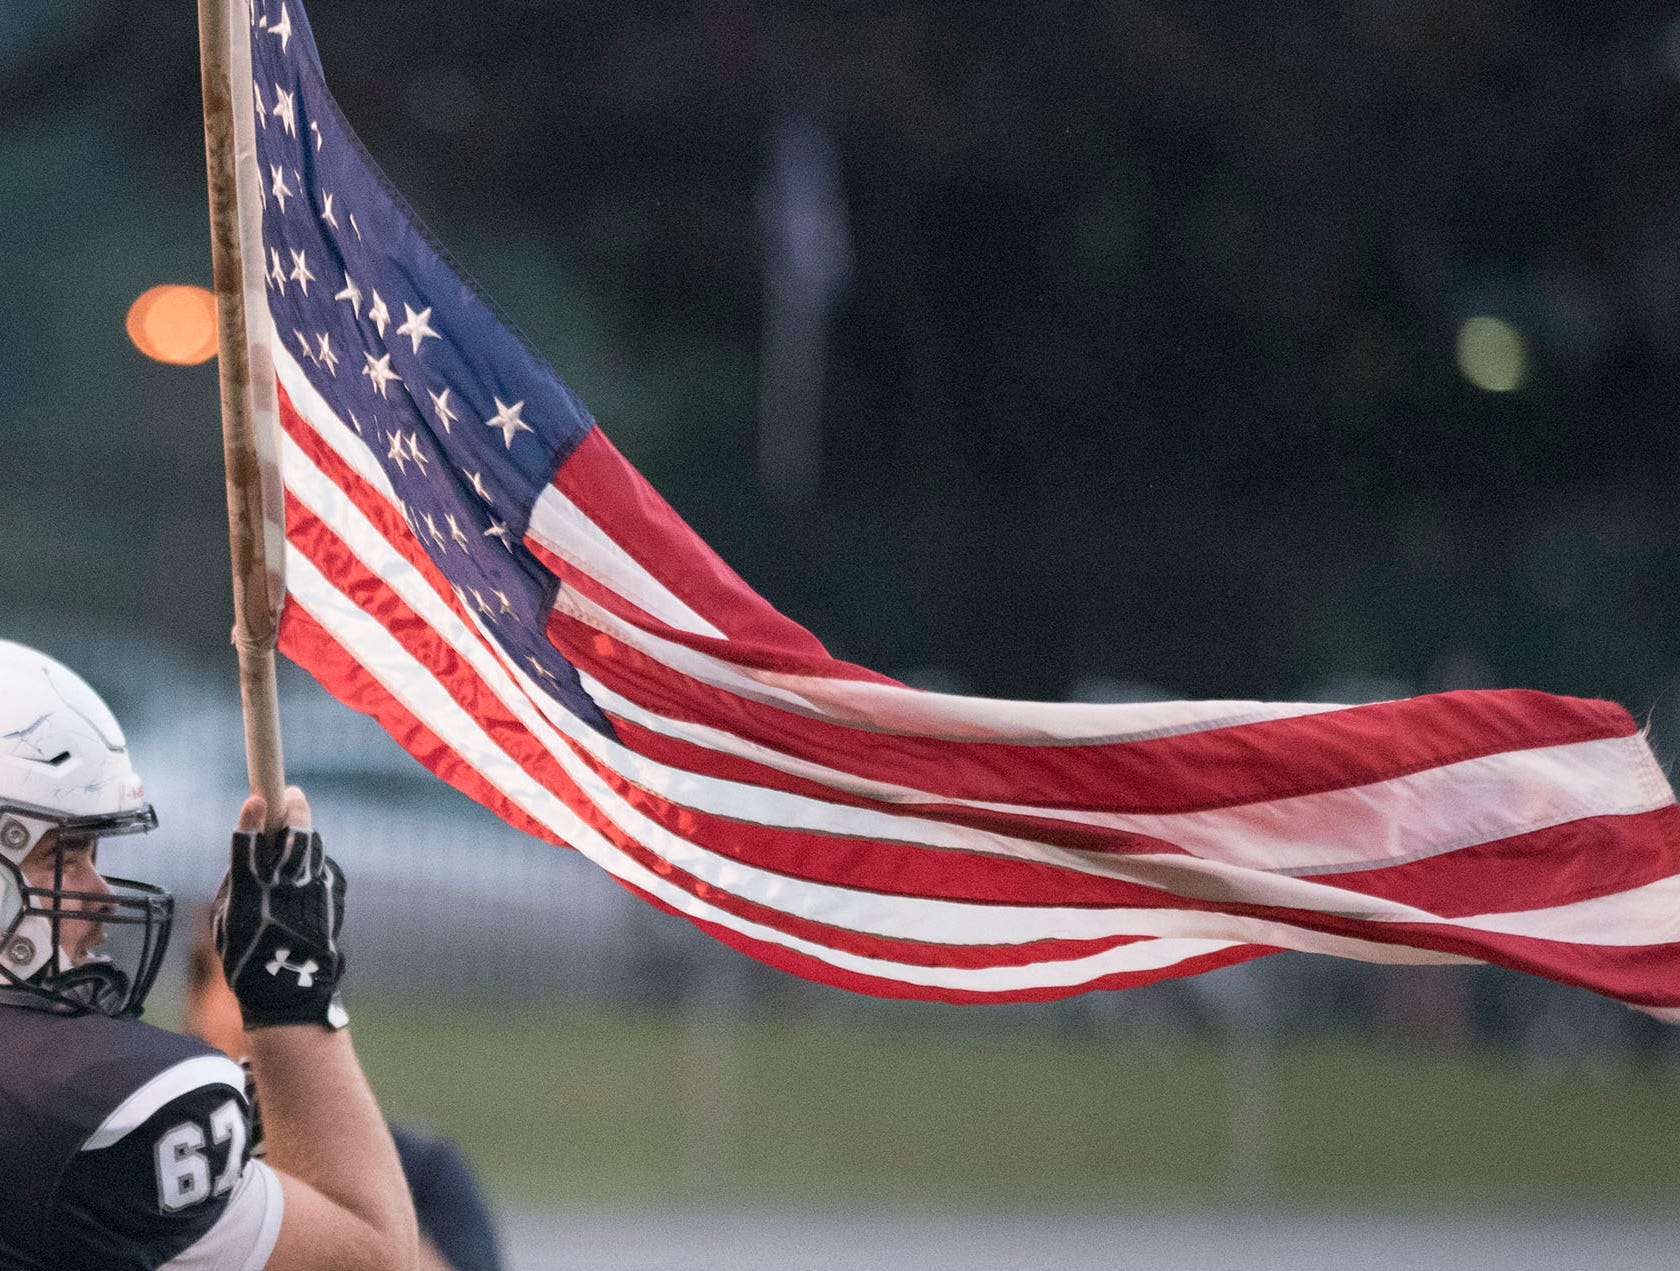 Chambersburg's Brock Harmon carries the U.S. flag for the Trojans. Chambersburg defeated Red Lion 28-19 in PIAA football on Friday, Sept. 7, 2018.